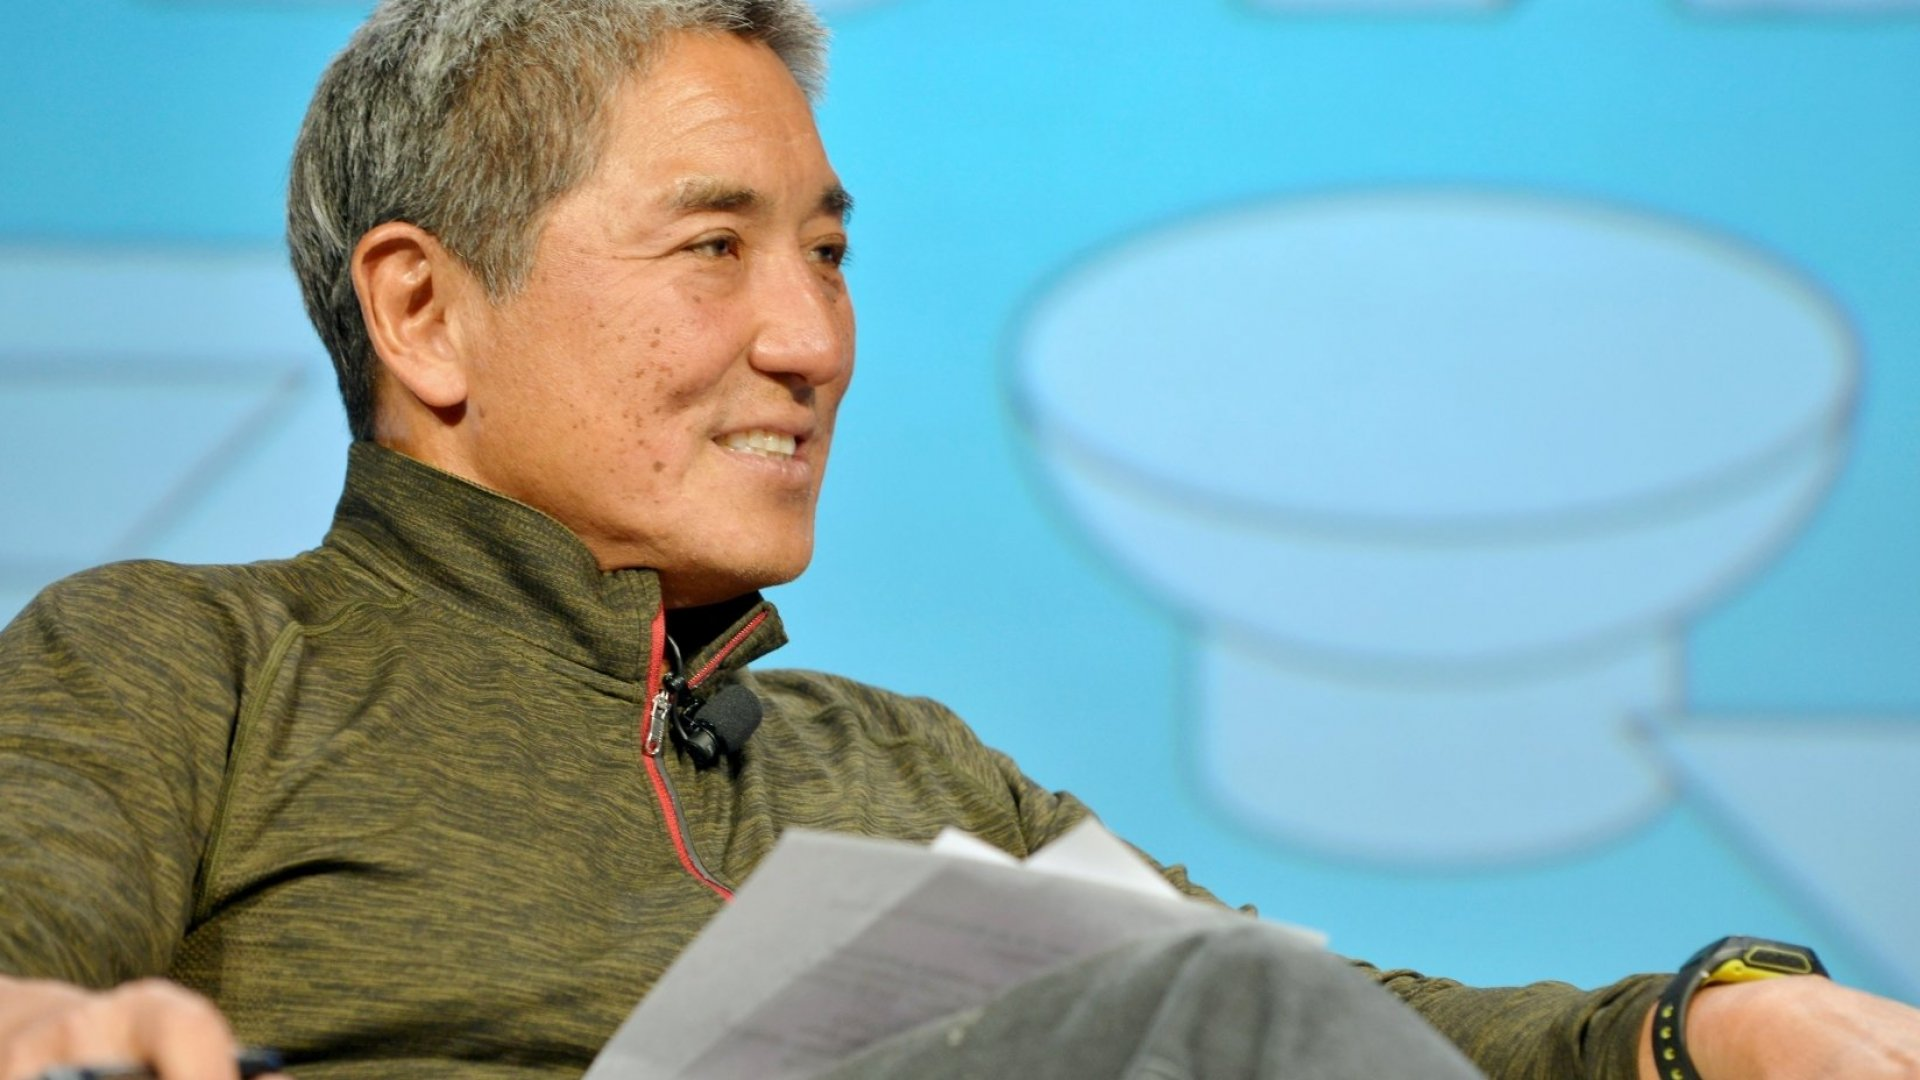 Stop Listening to Your Customers. According to Guy Kawasaki, It's Better to Think Several Steps Ahead